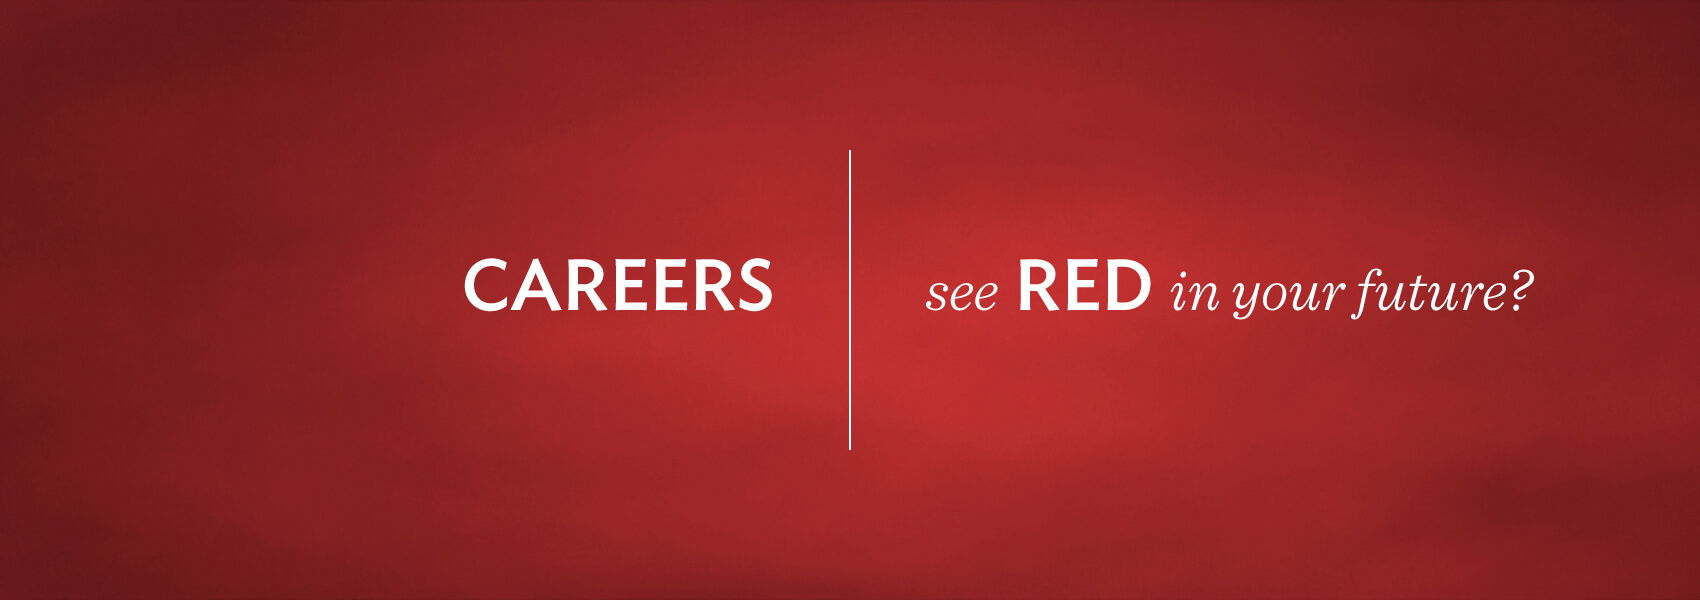 Merlot Marketing careers banner